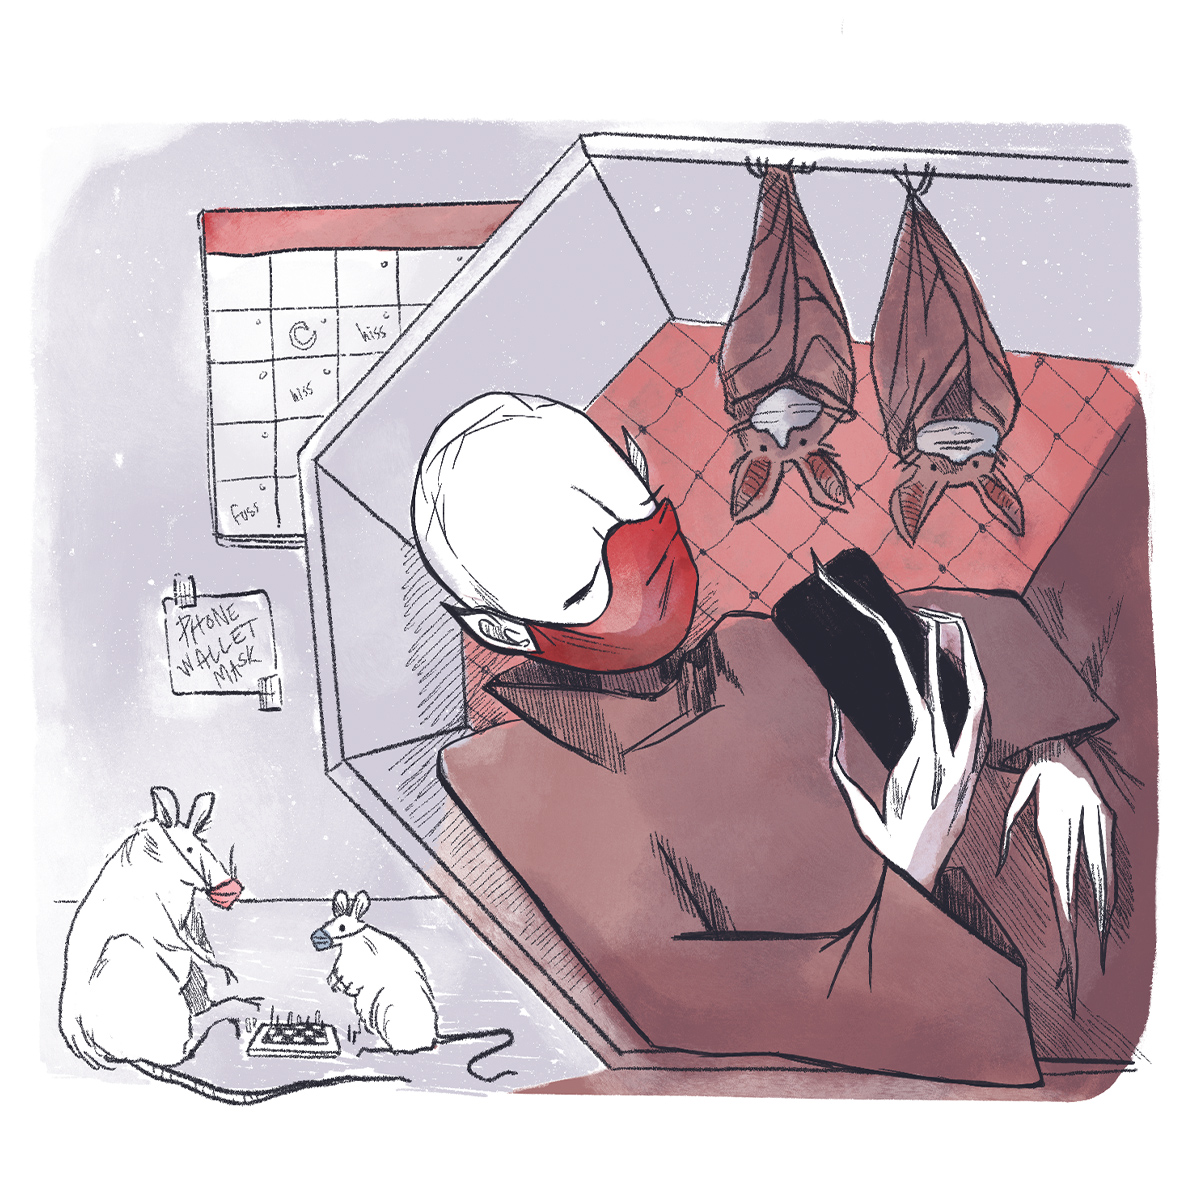 Nosferatu in quarantine, checking iphone as two masked bats and two masked bats keep him company.